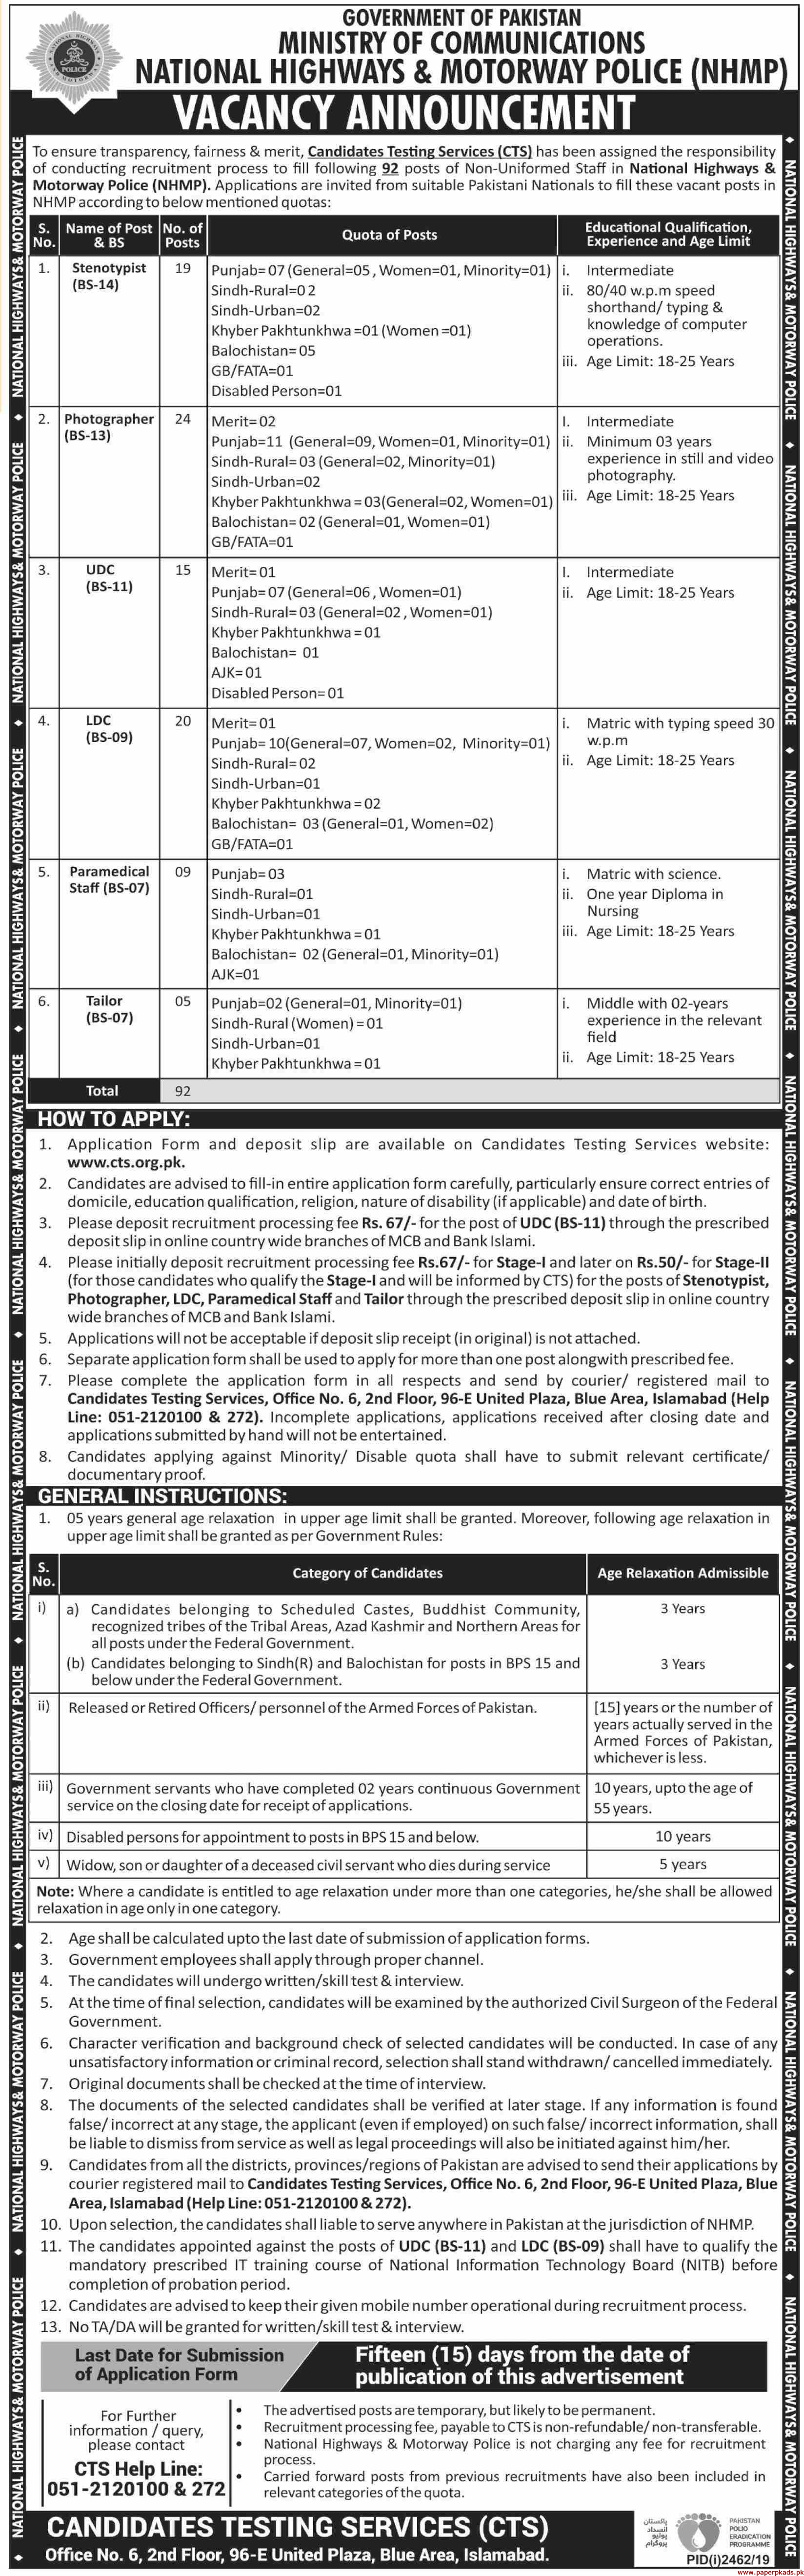 NH&MP National Highways & Motorway Police Jobs 2019 Latest